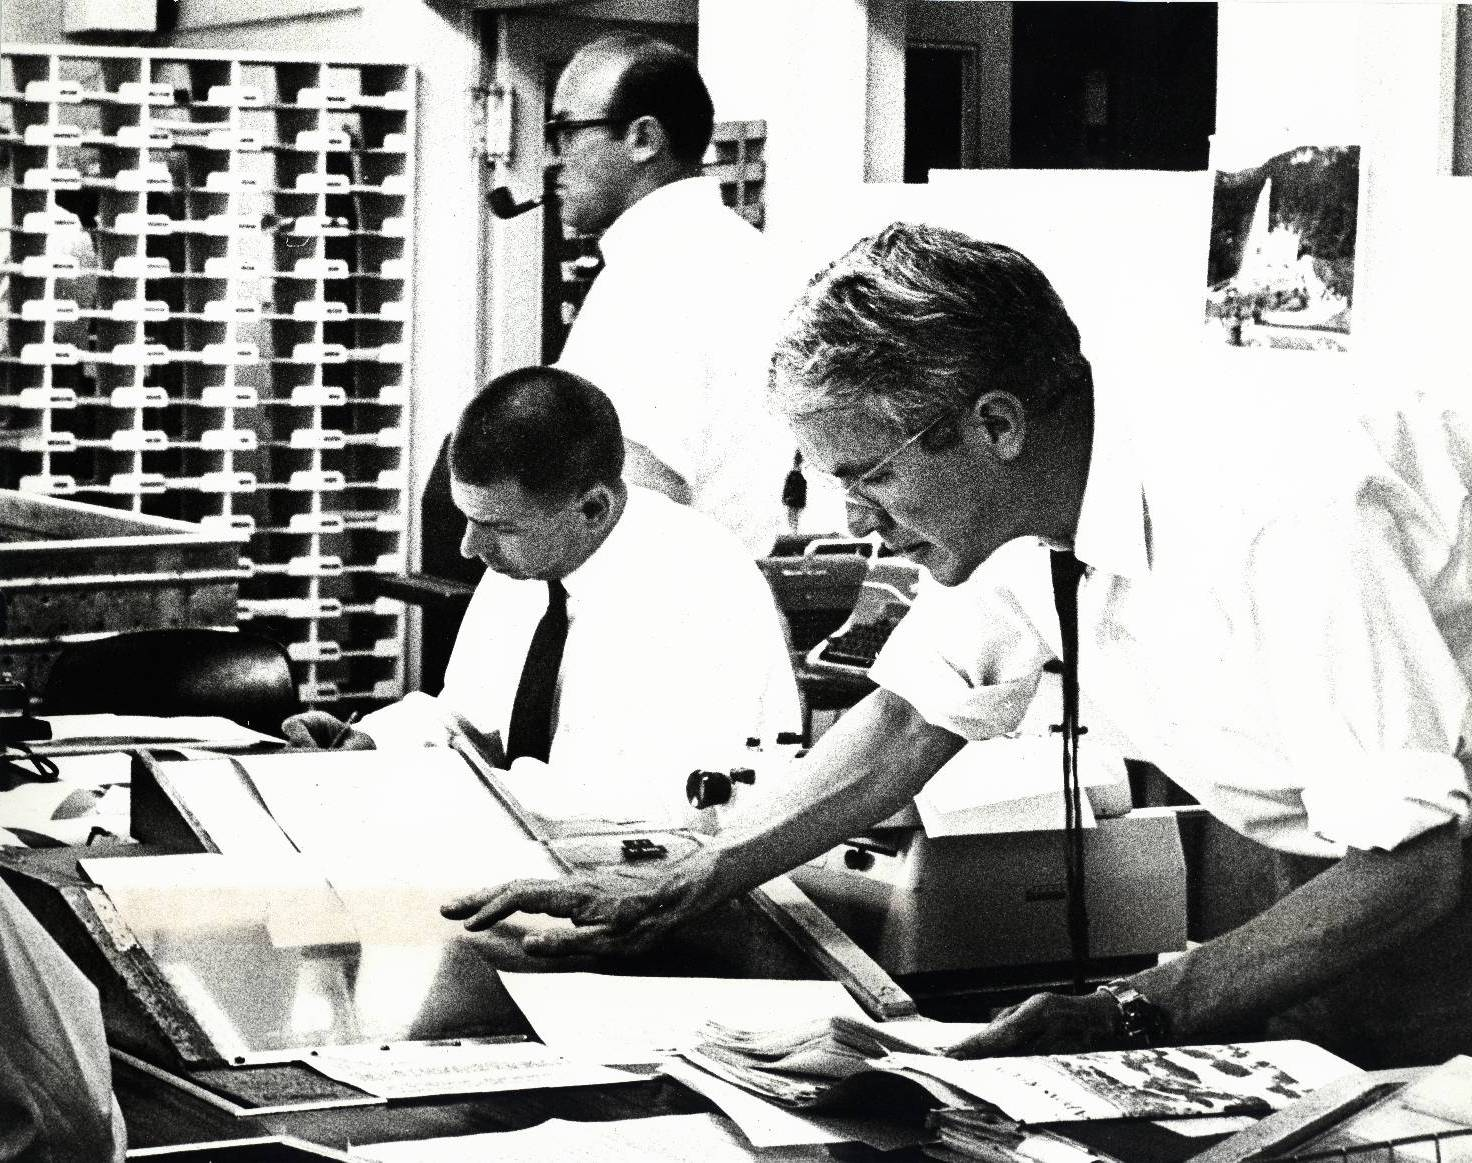 RFE COVERS THE MIDDLE EASET CRISIS -- At work in RFE's Central News Room during the Arab-Israeli war: (from left) Editor Arthur Breslauer, Assistant NEws Director Tom Bodin and Deputy CNR Chief Brian McGill. June 1967.